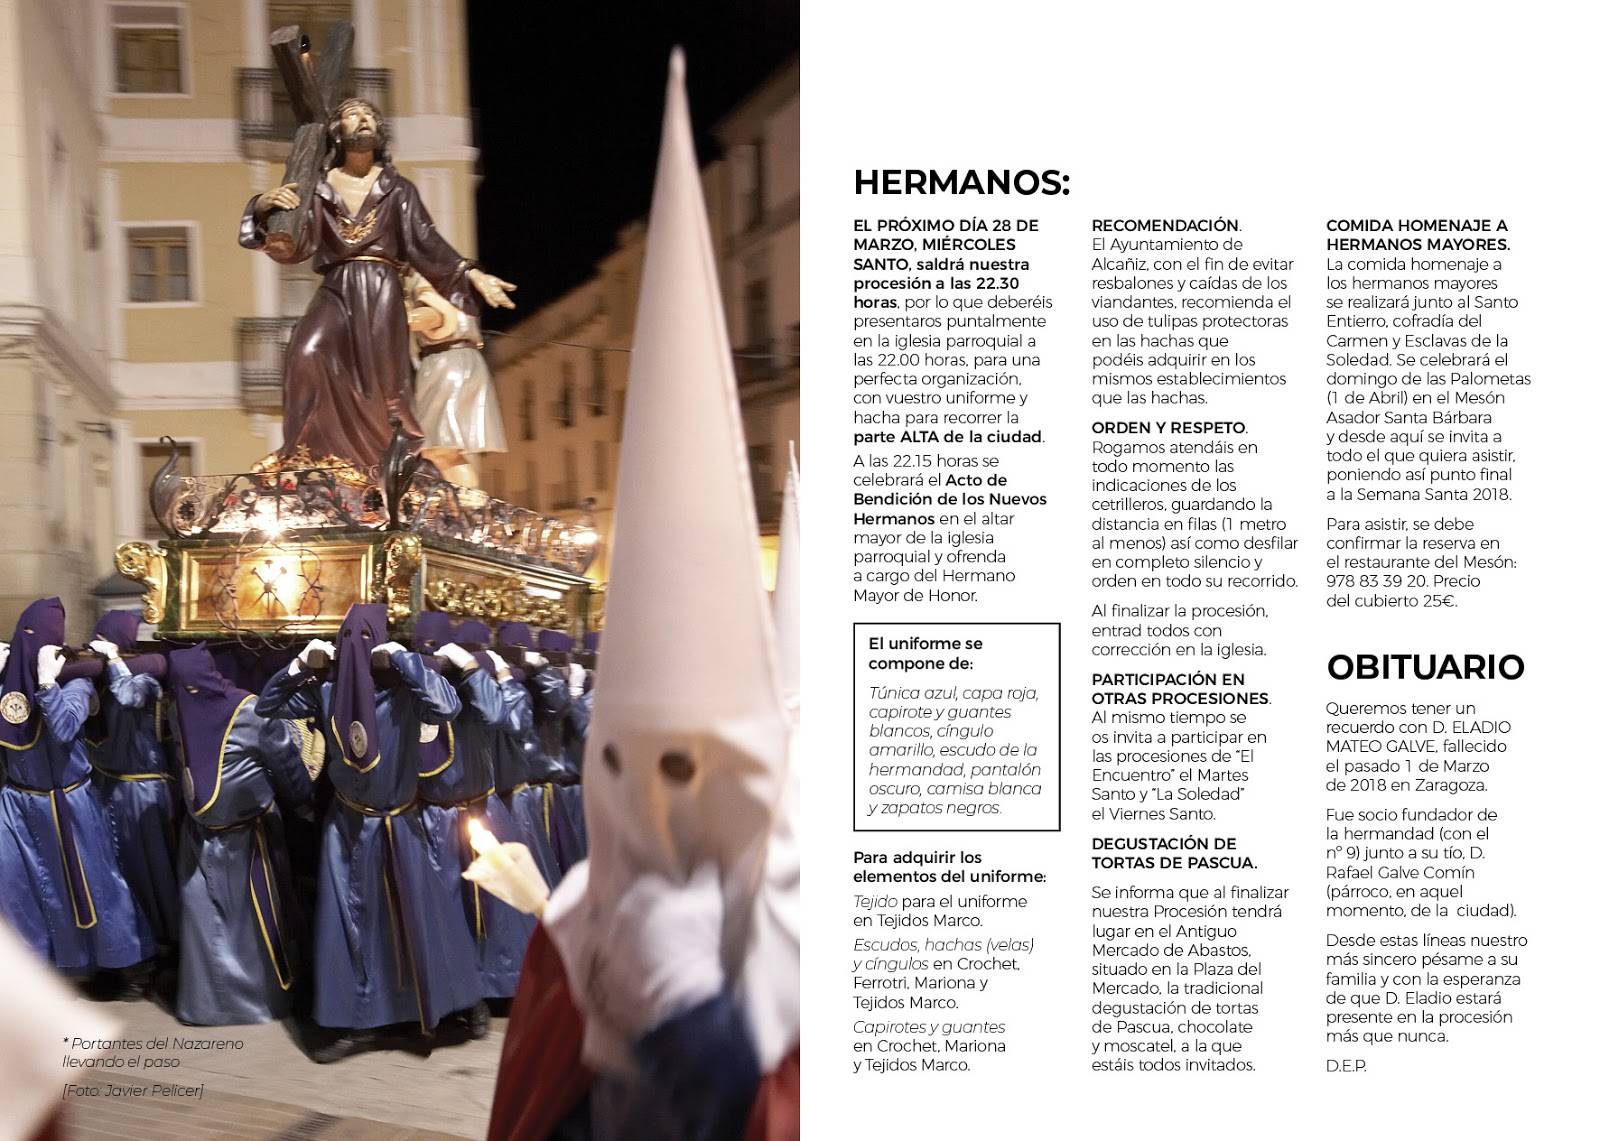 Hermandad de Jesús Nazareno: Folleto 2018